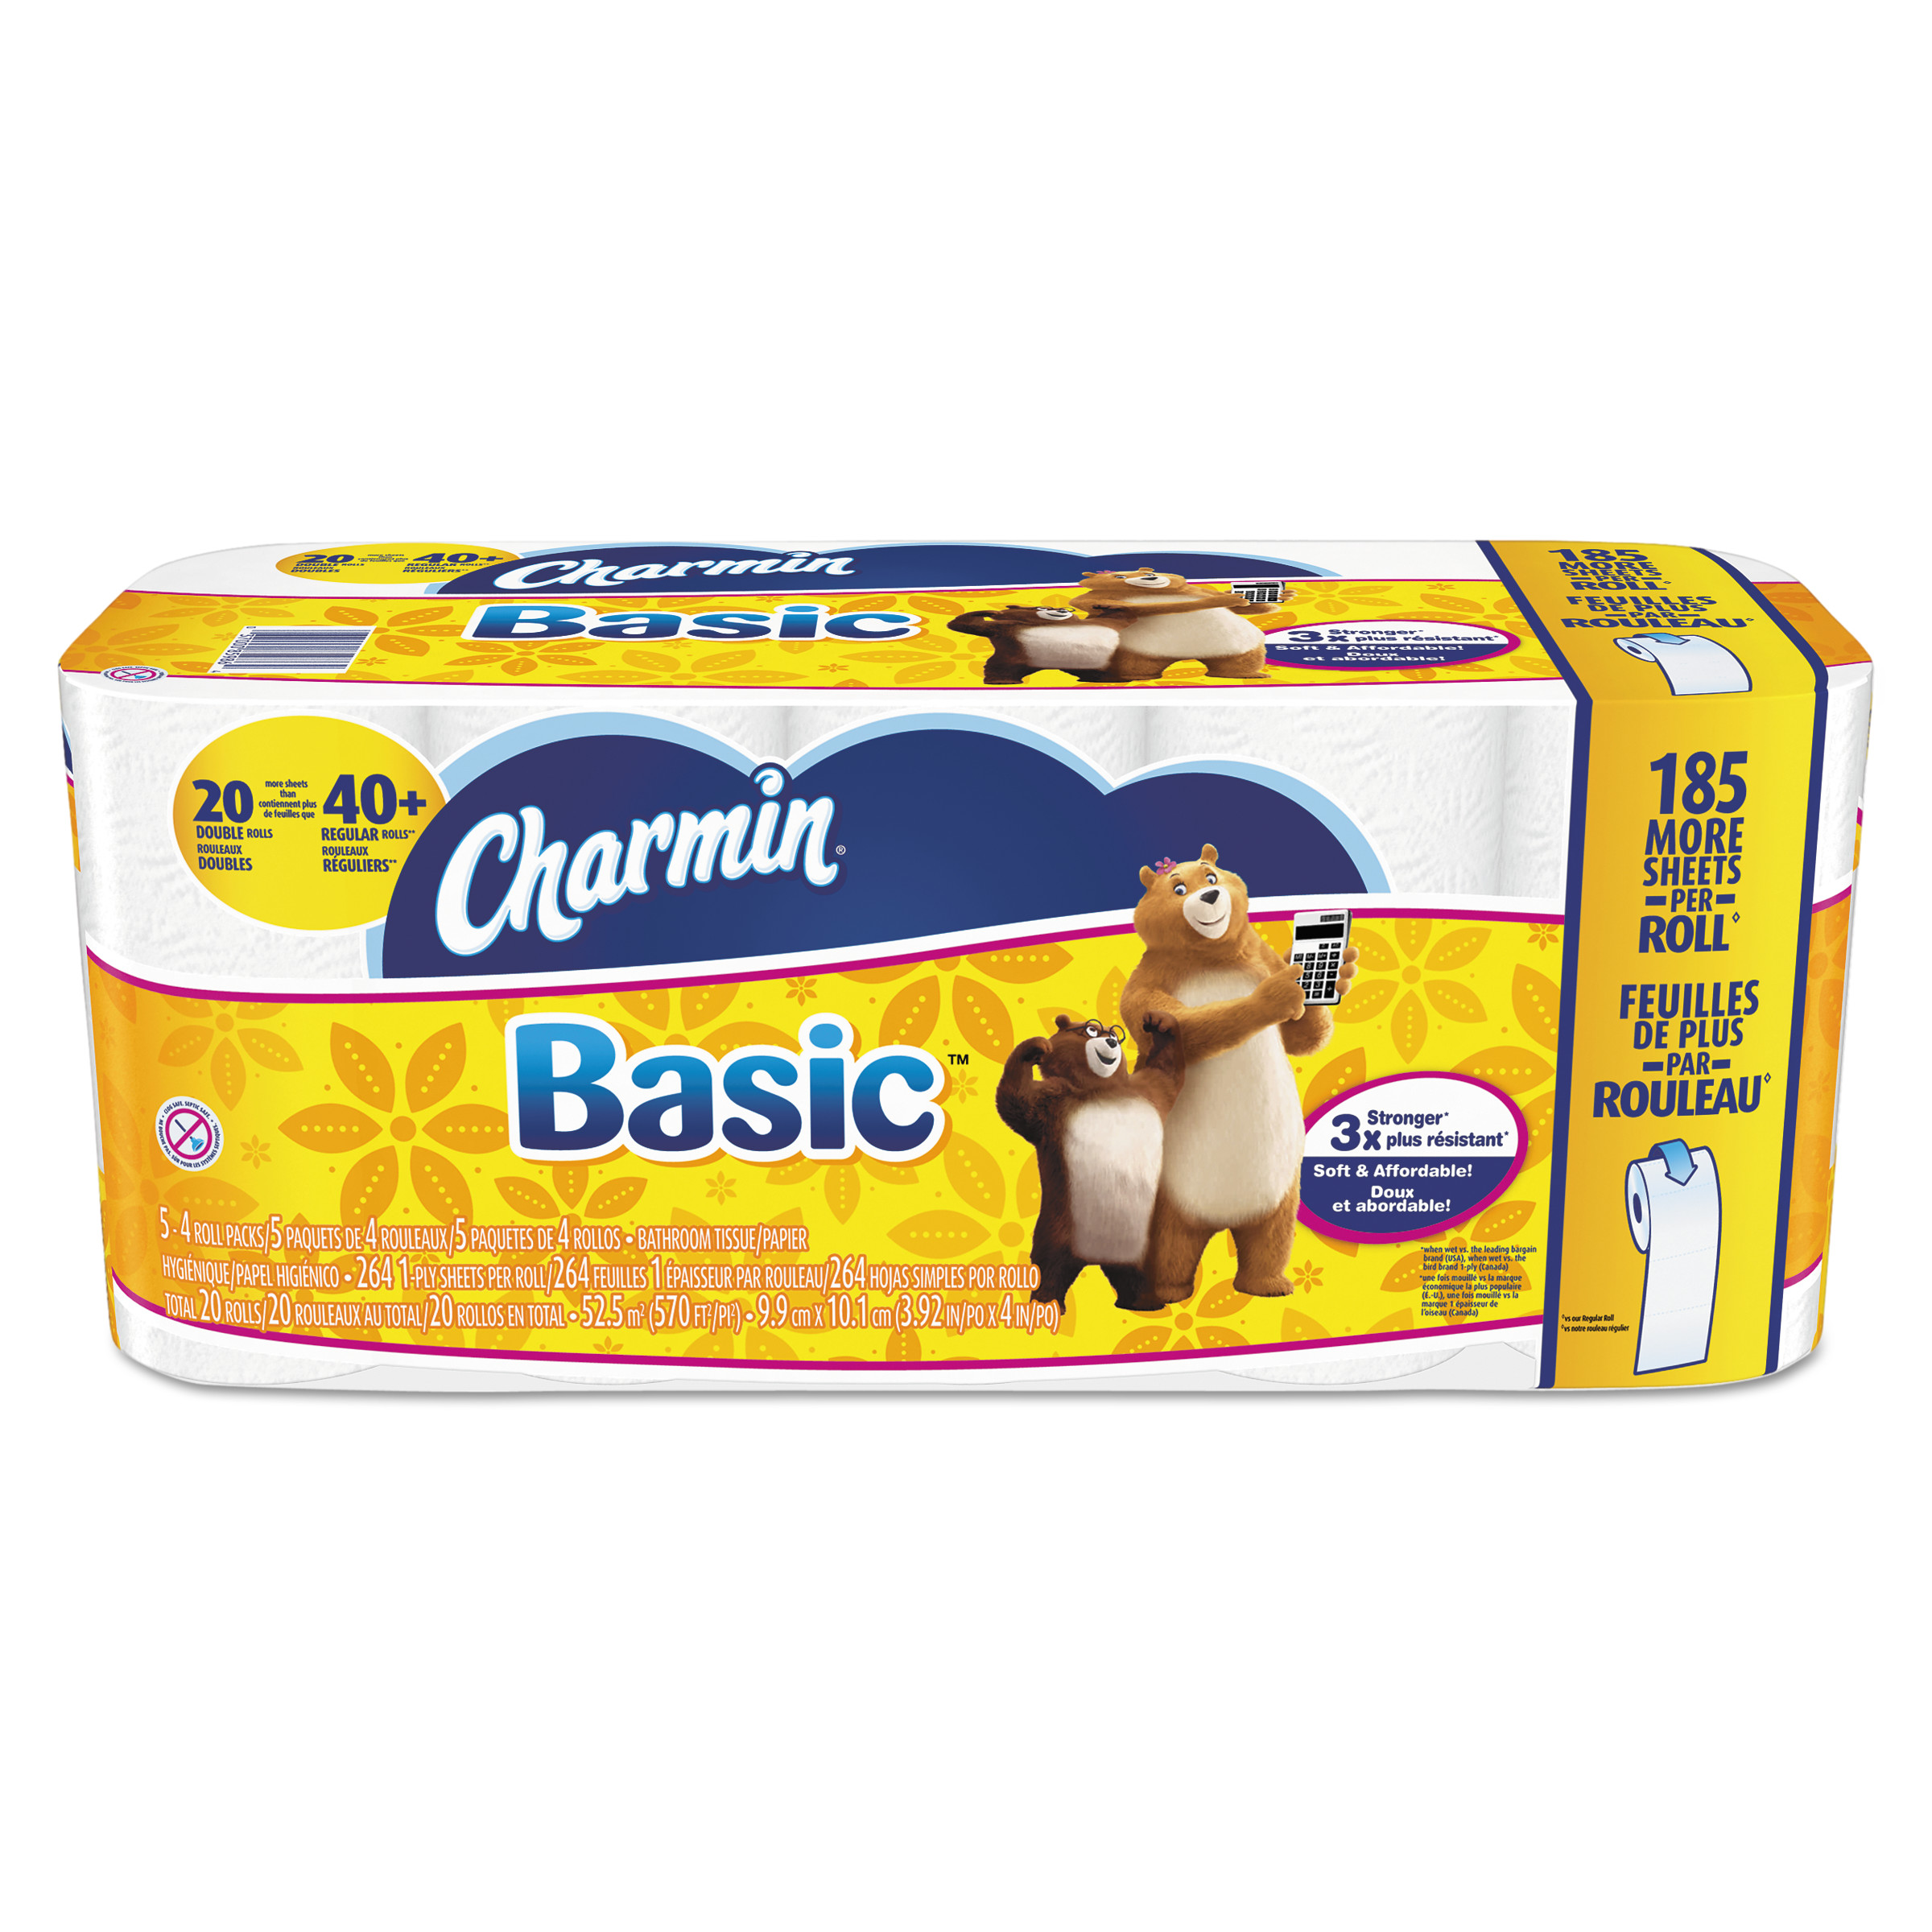 Charmin Basic Bathroom Tissue, 1-Ply, White, 264 Sheets Per Roll, 20 Rolls/Pack